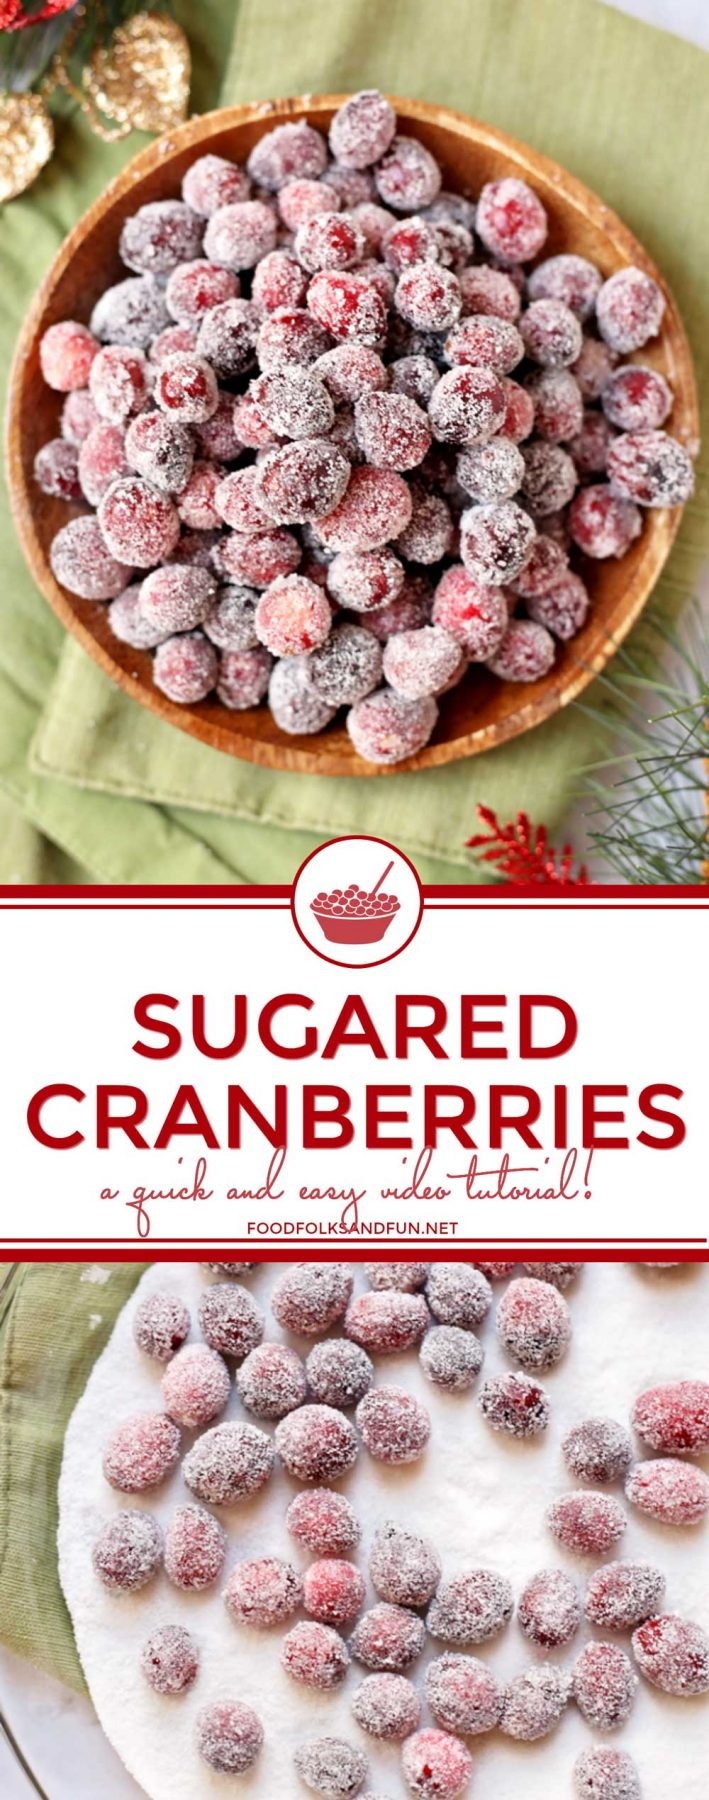 Enjoy this easy tutorial for Sugared Cranberries; they're the perfect holiday party snack. Add them to holiday cookies and cakes for some extra bling! via @foodfolksandfun